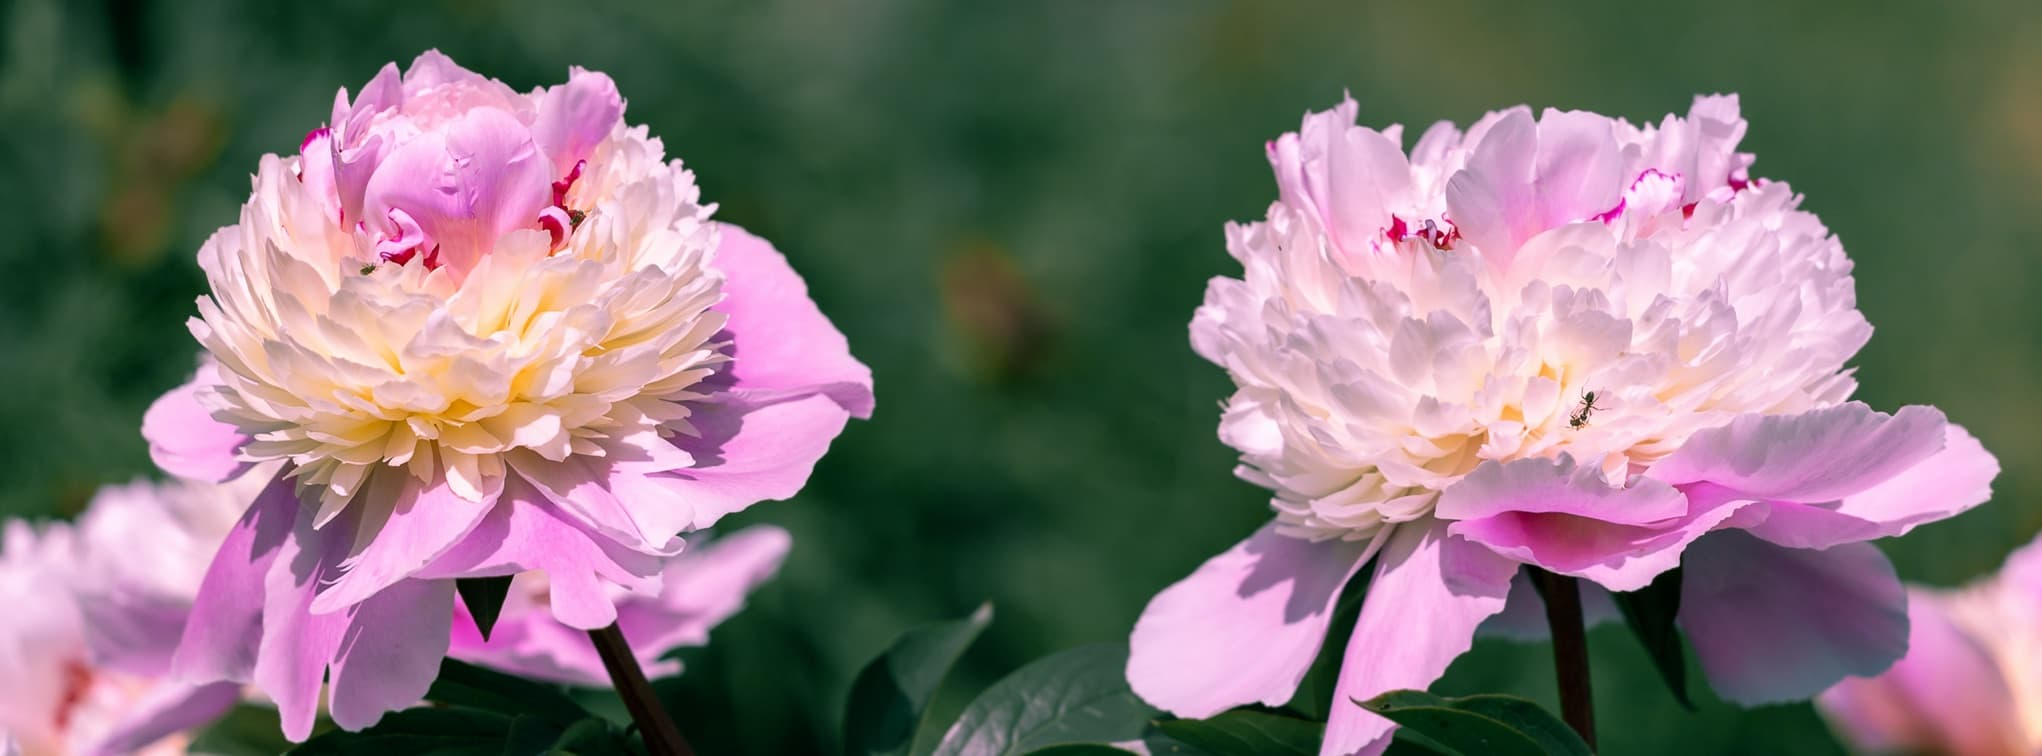 two pink peonies in the garden